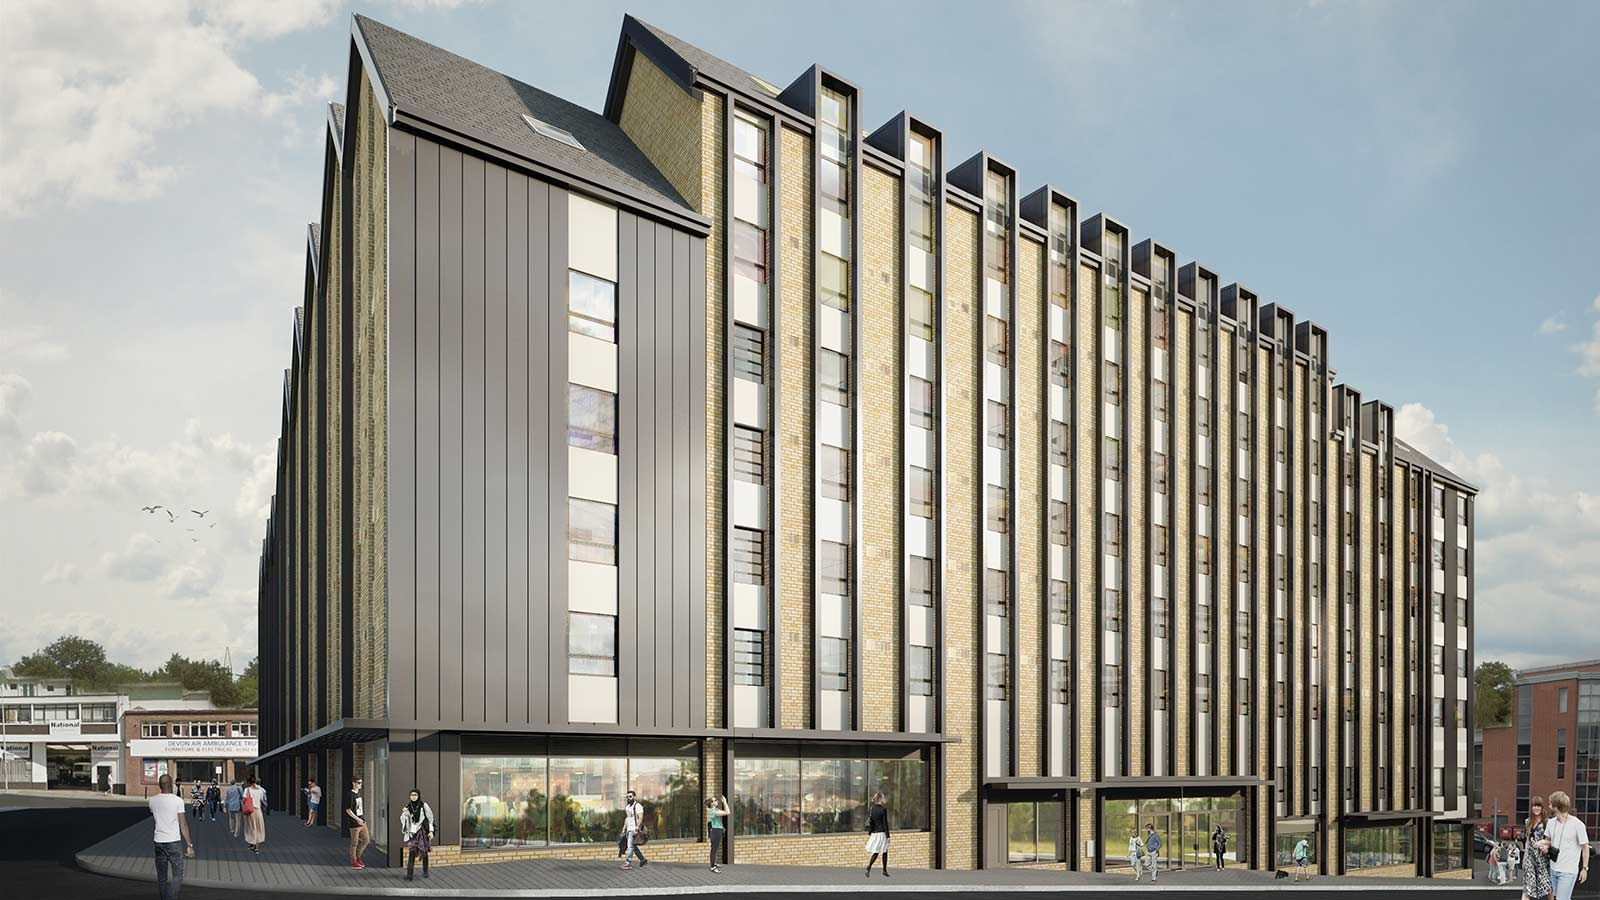 University of Exeter The Courtyard Accommodation Building Exterior - Mace Group